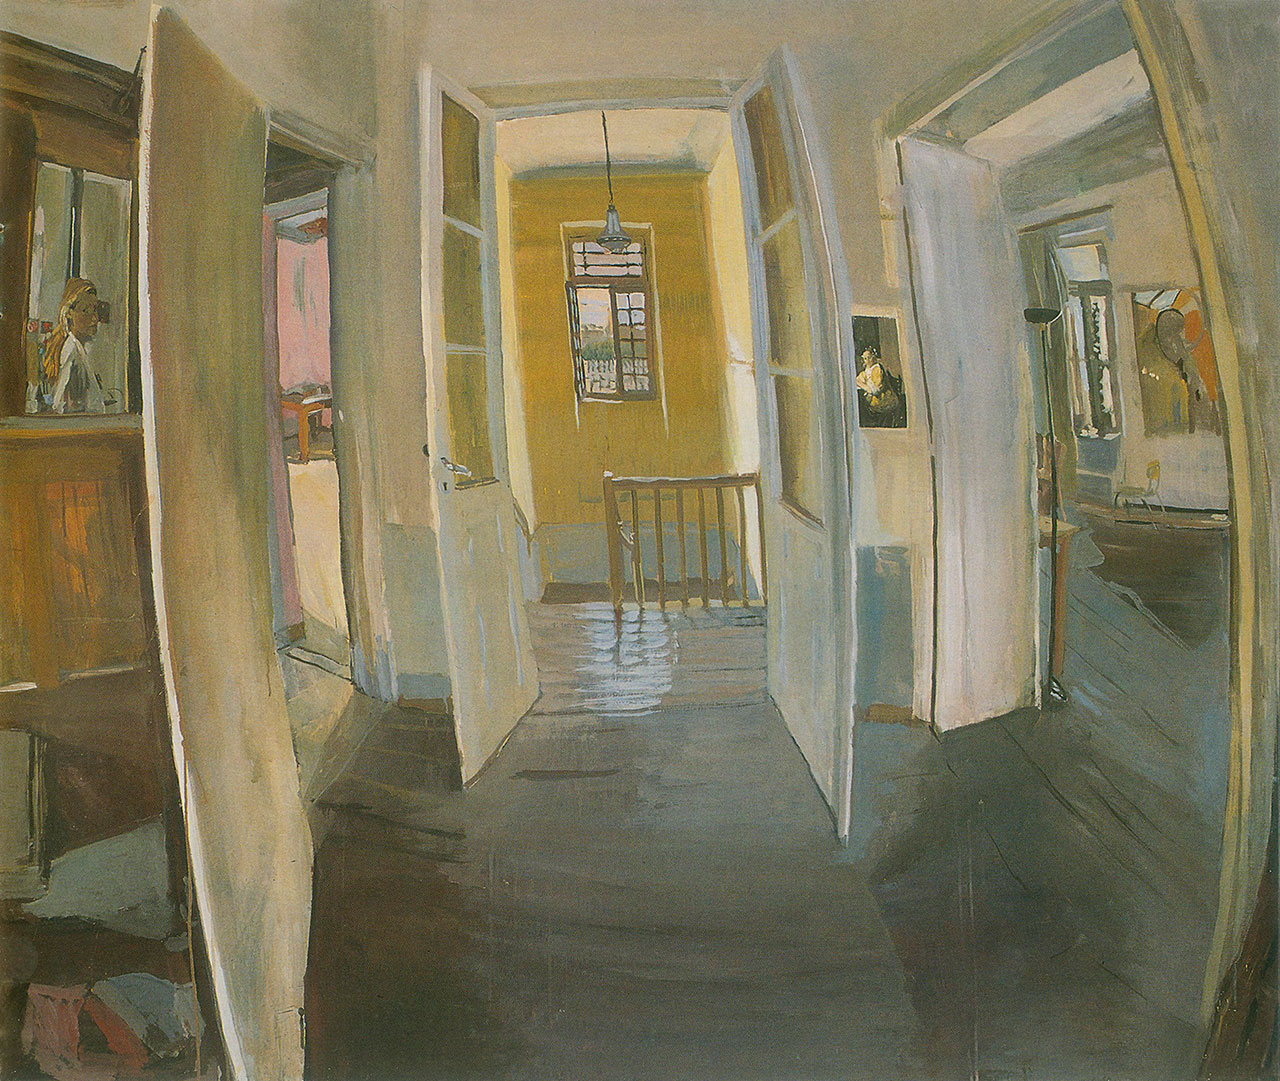 Maria Filopoulou, The window, 1992. Oil on canvas, 165 x 204cm.